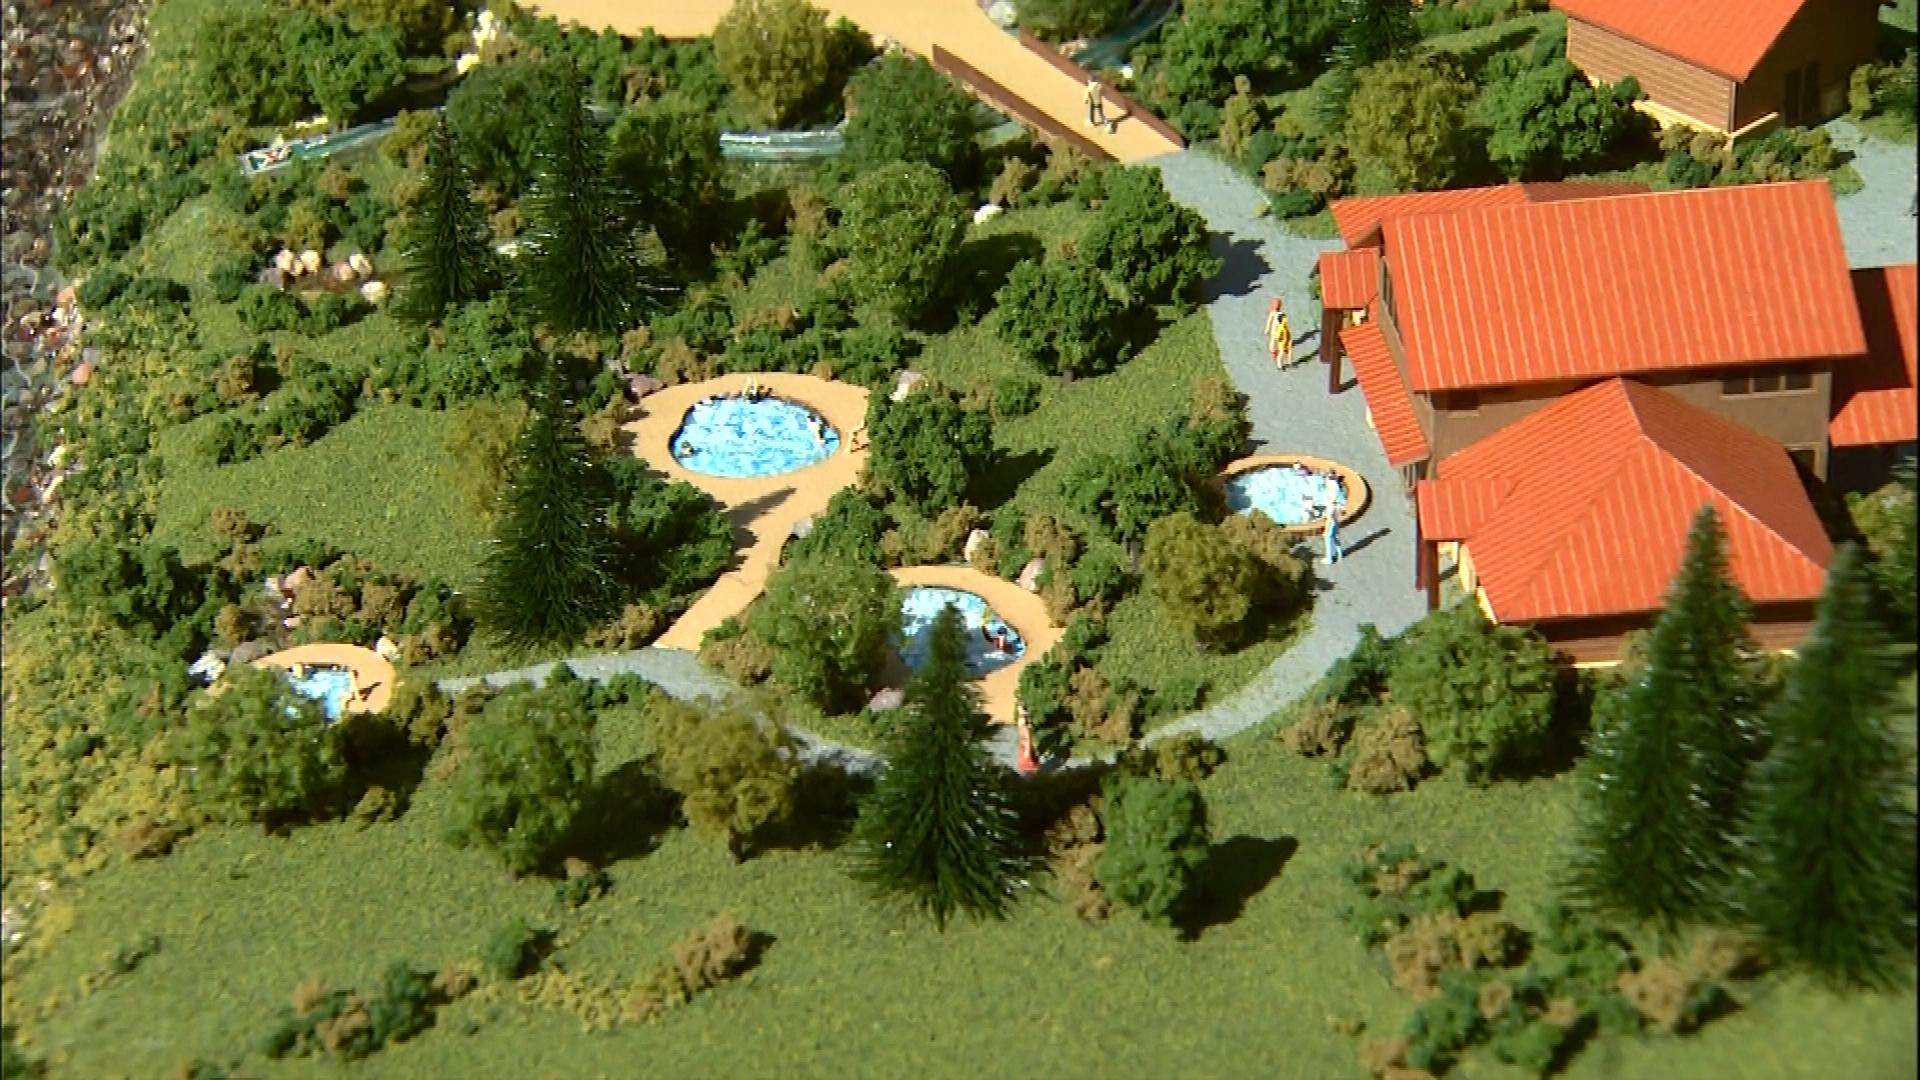 A model of the new hot springs (credit: CBS)